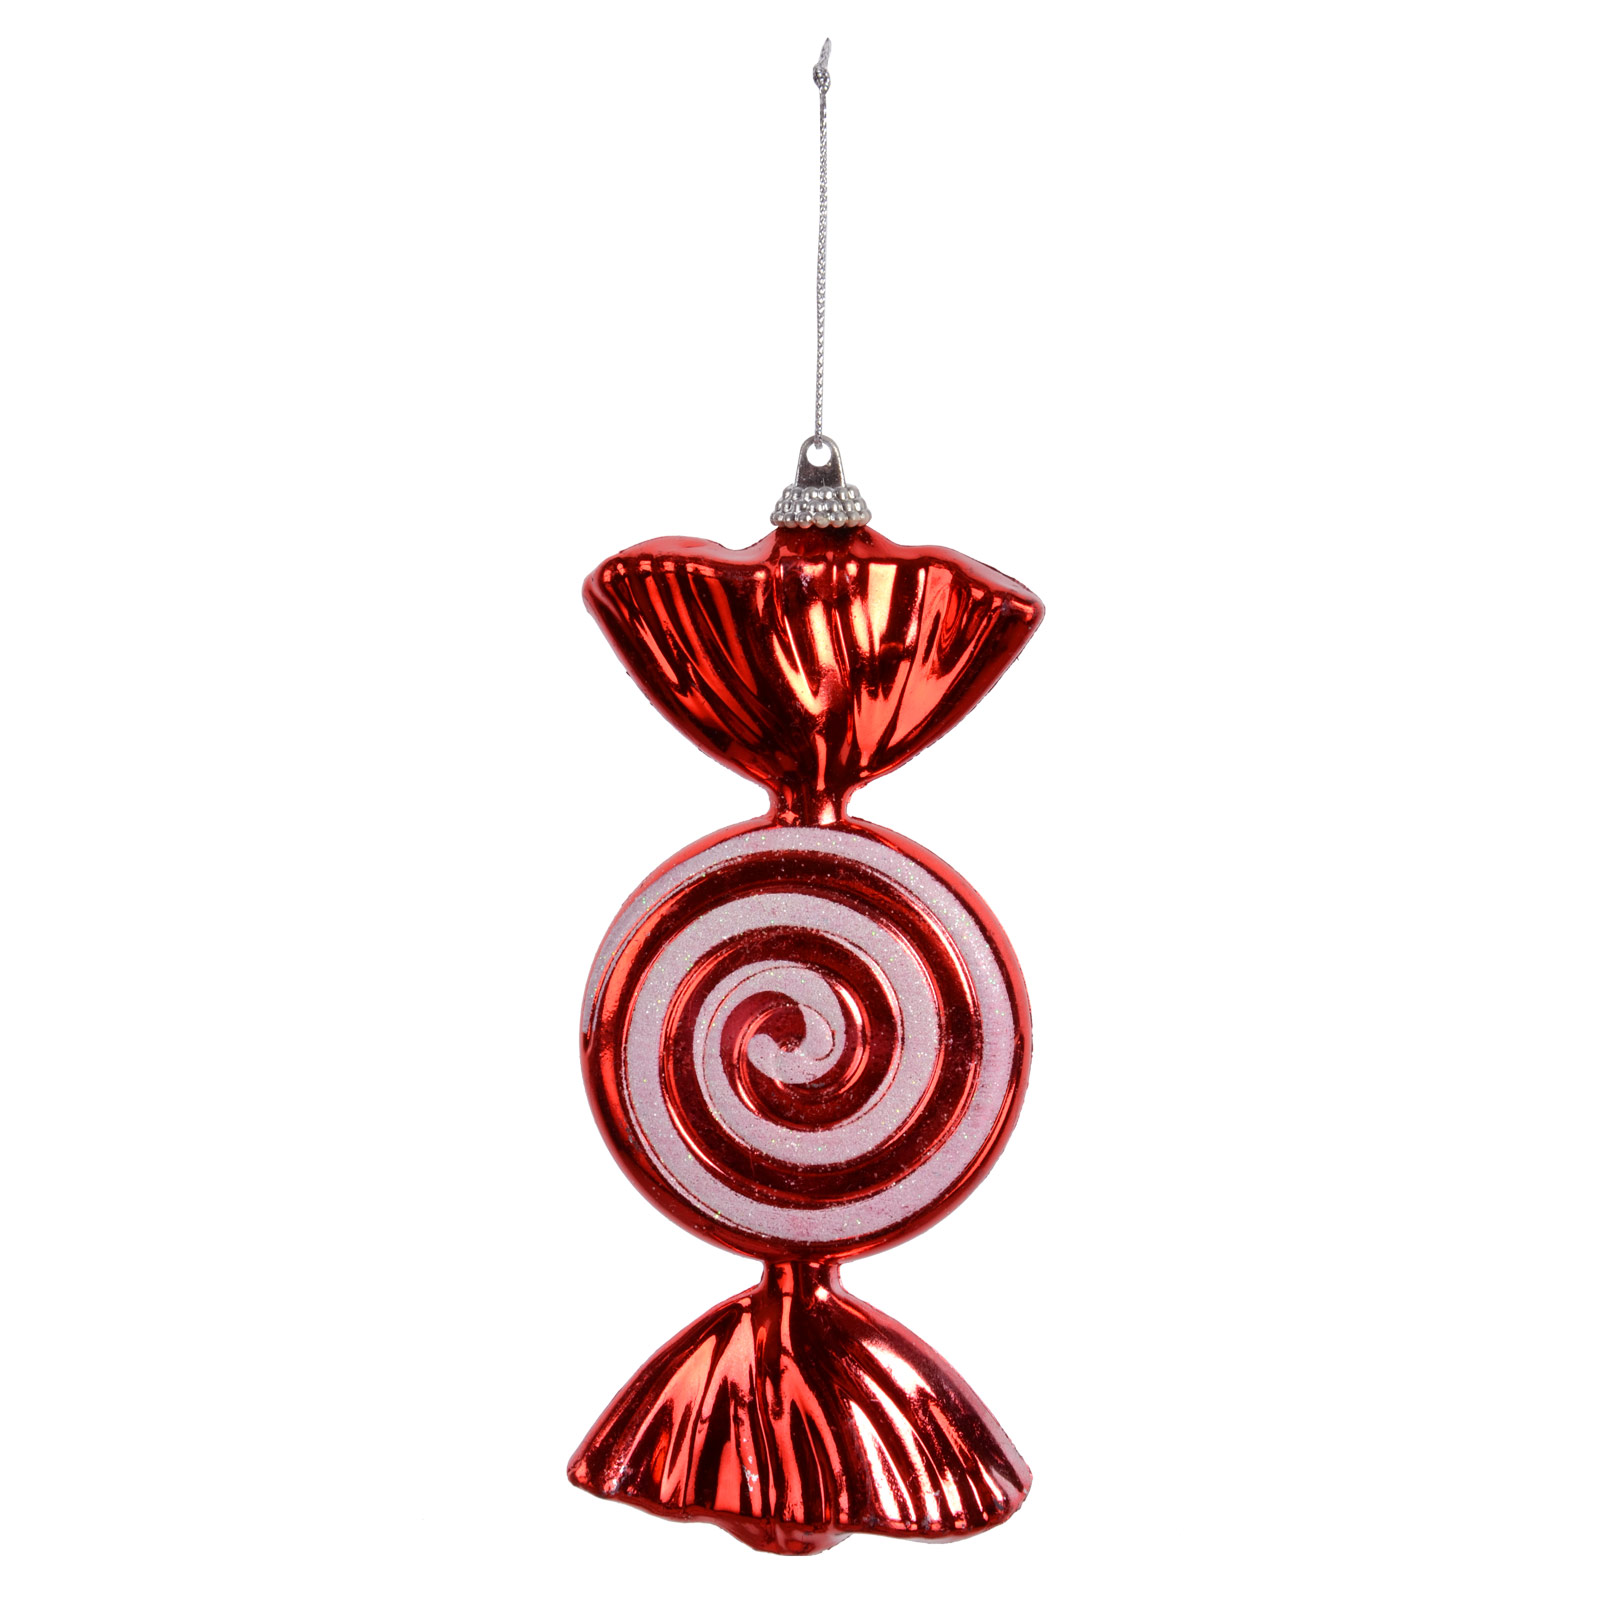 Glitter candy sweet gift hanging christmas tree decorations ornaments baubles ebay - Hanging christmas ornaments ...